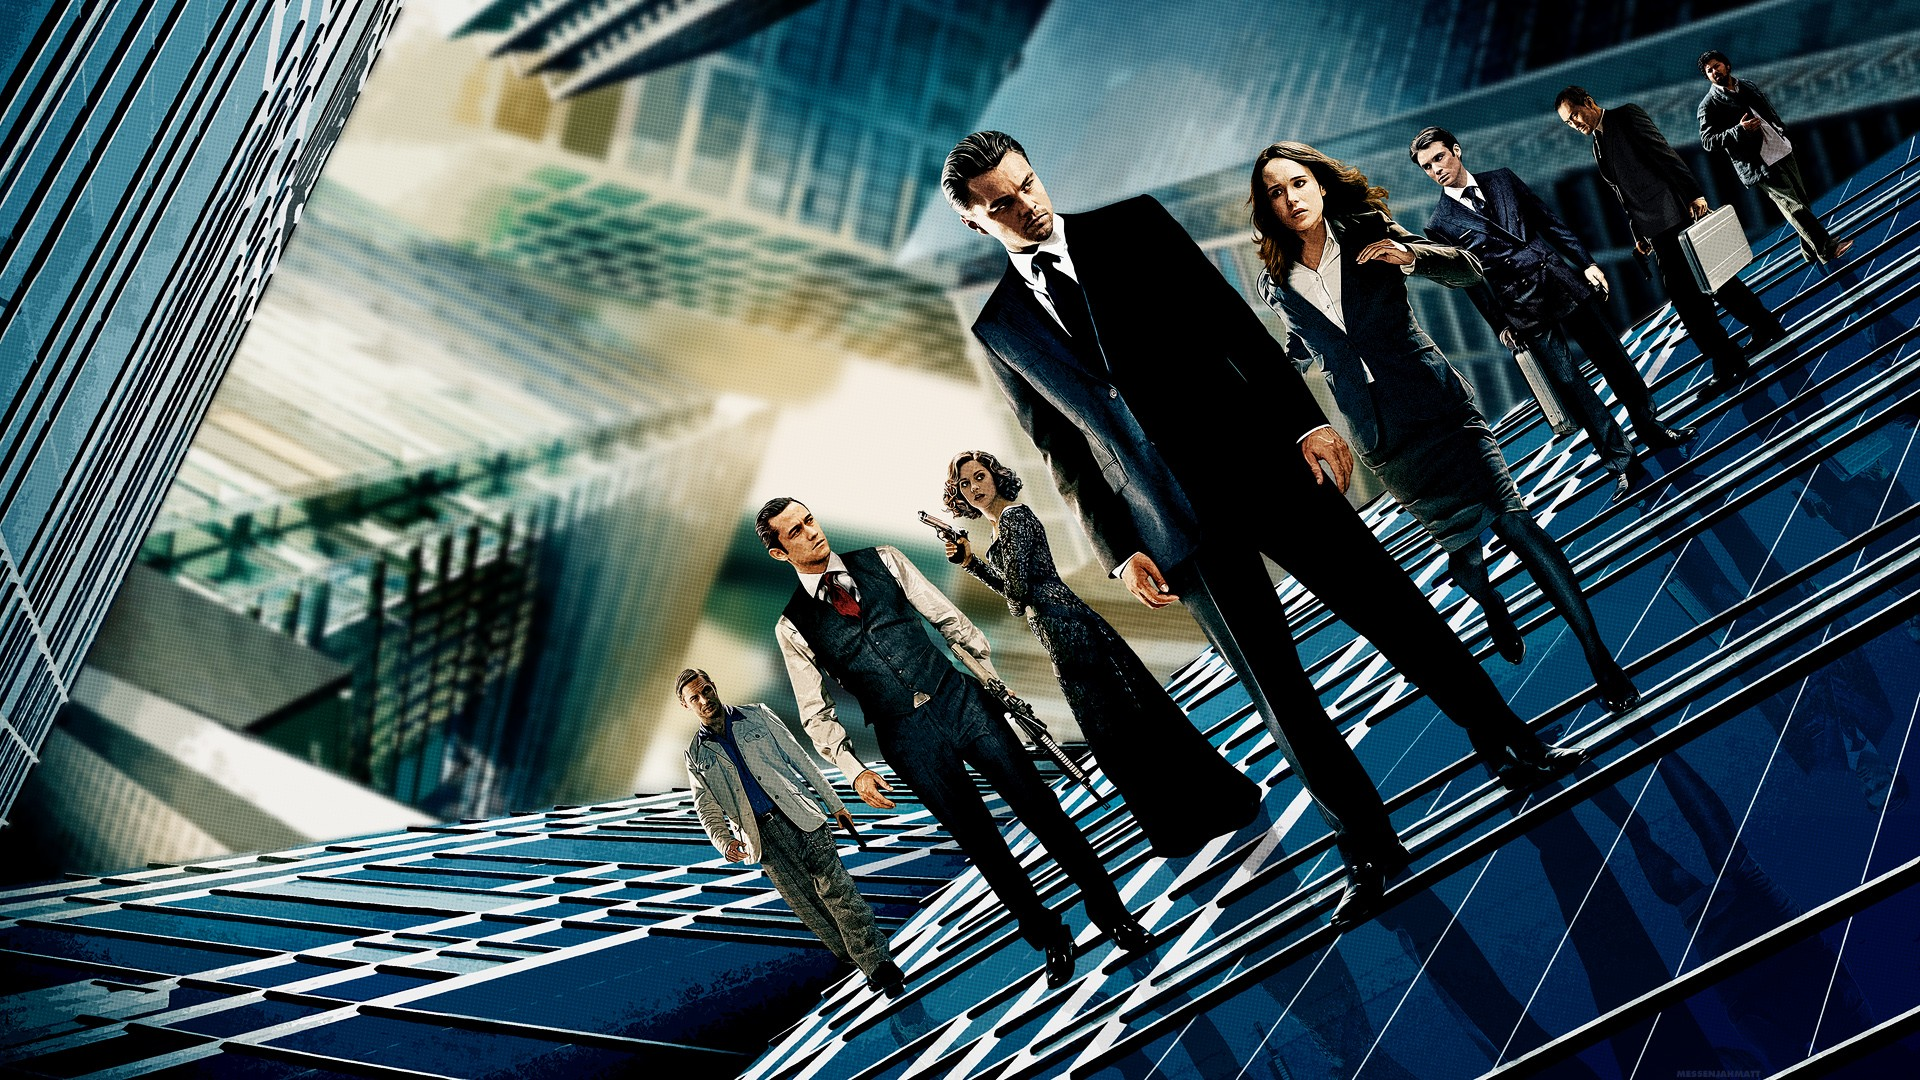 inception wallpapers high quality download free